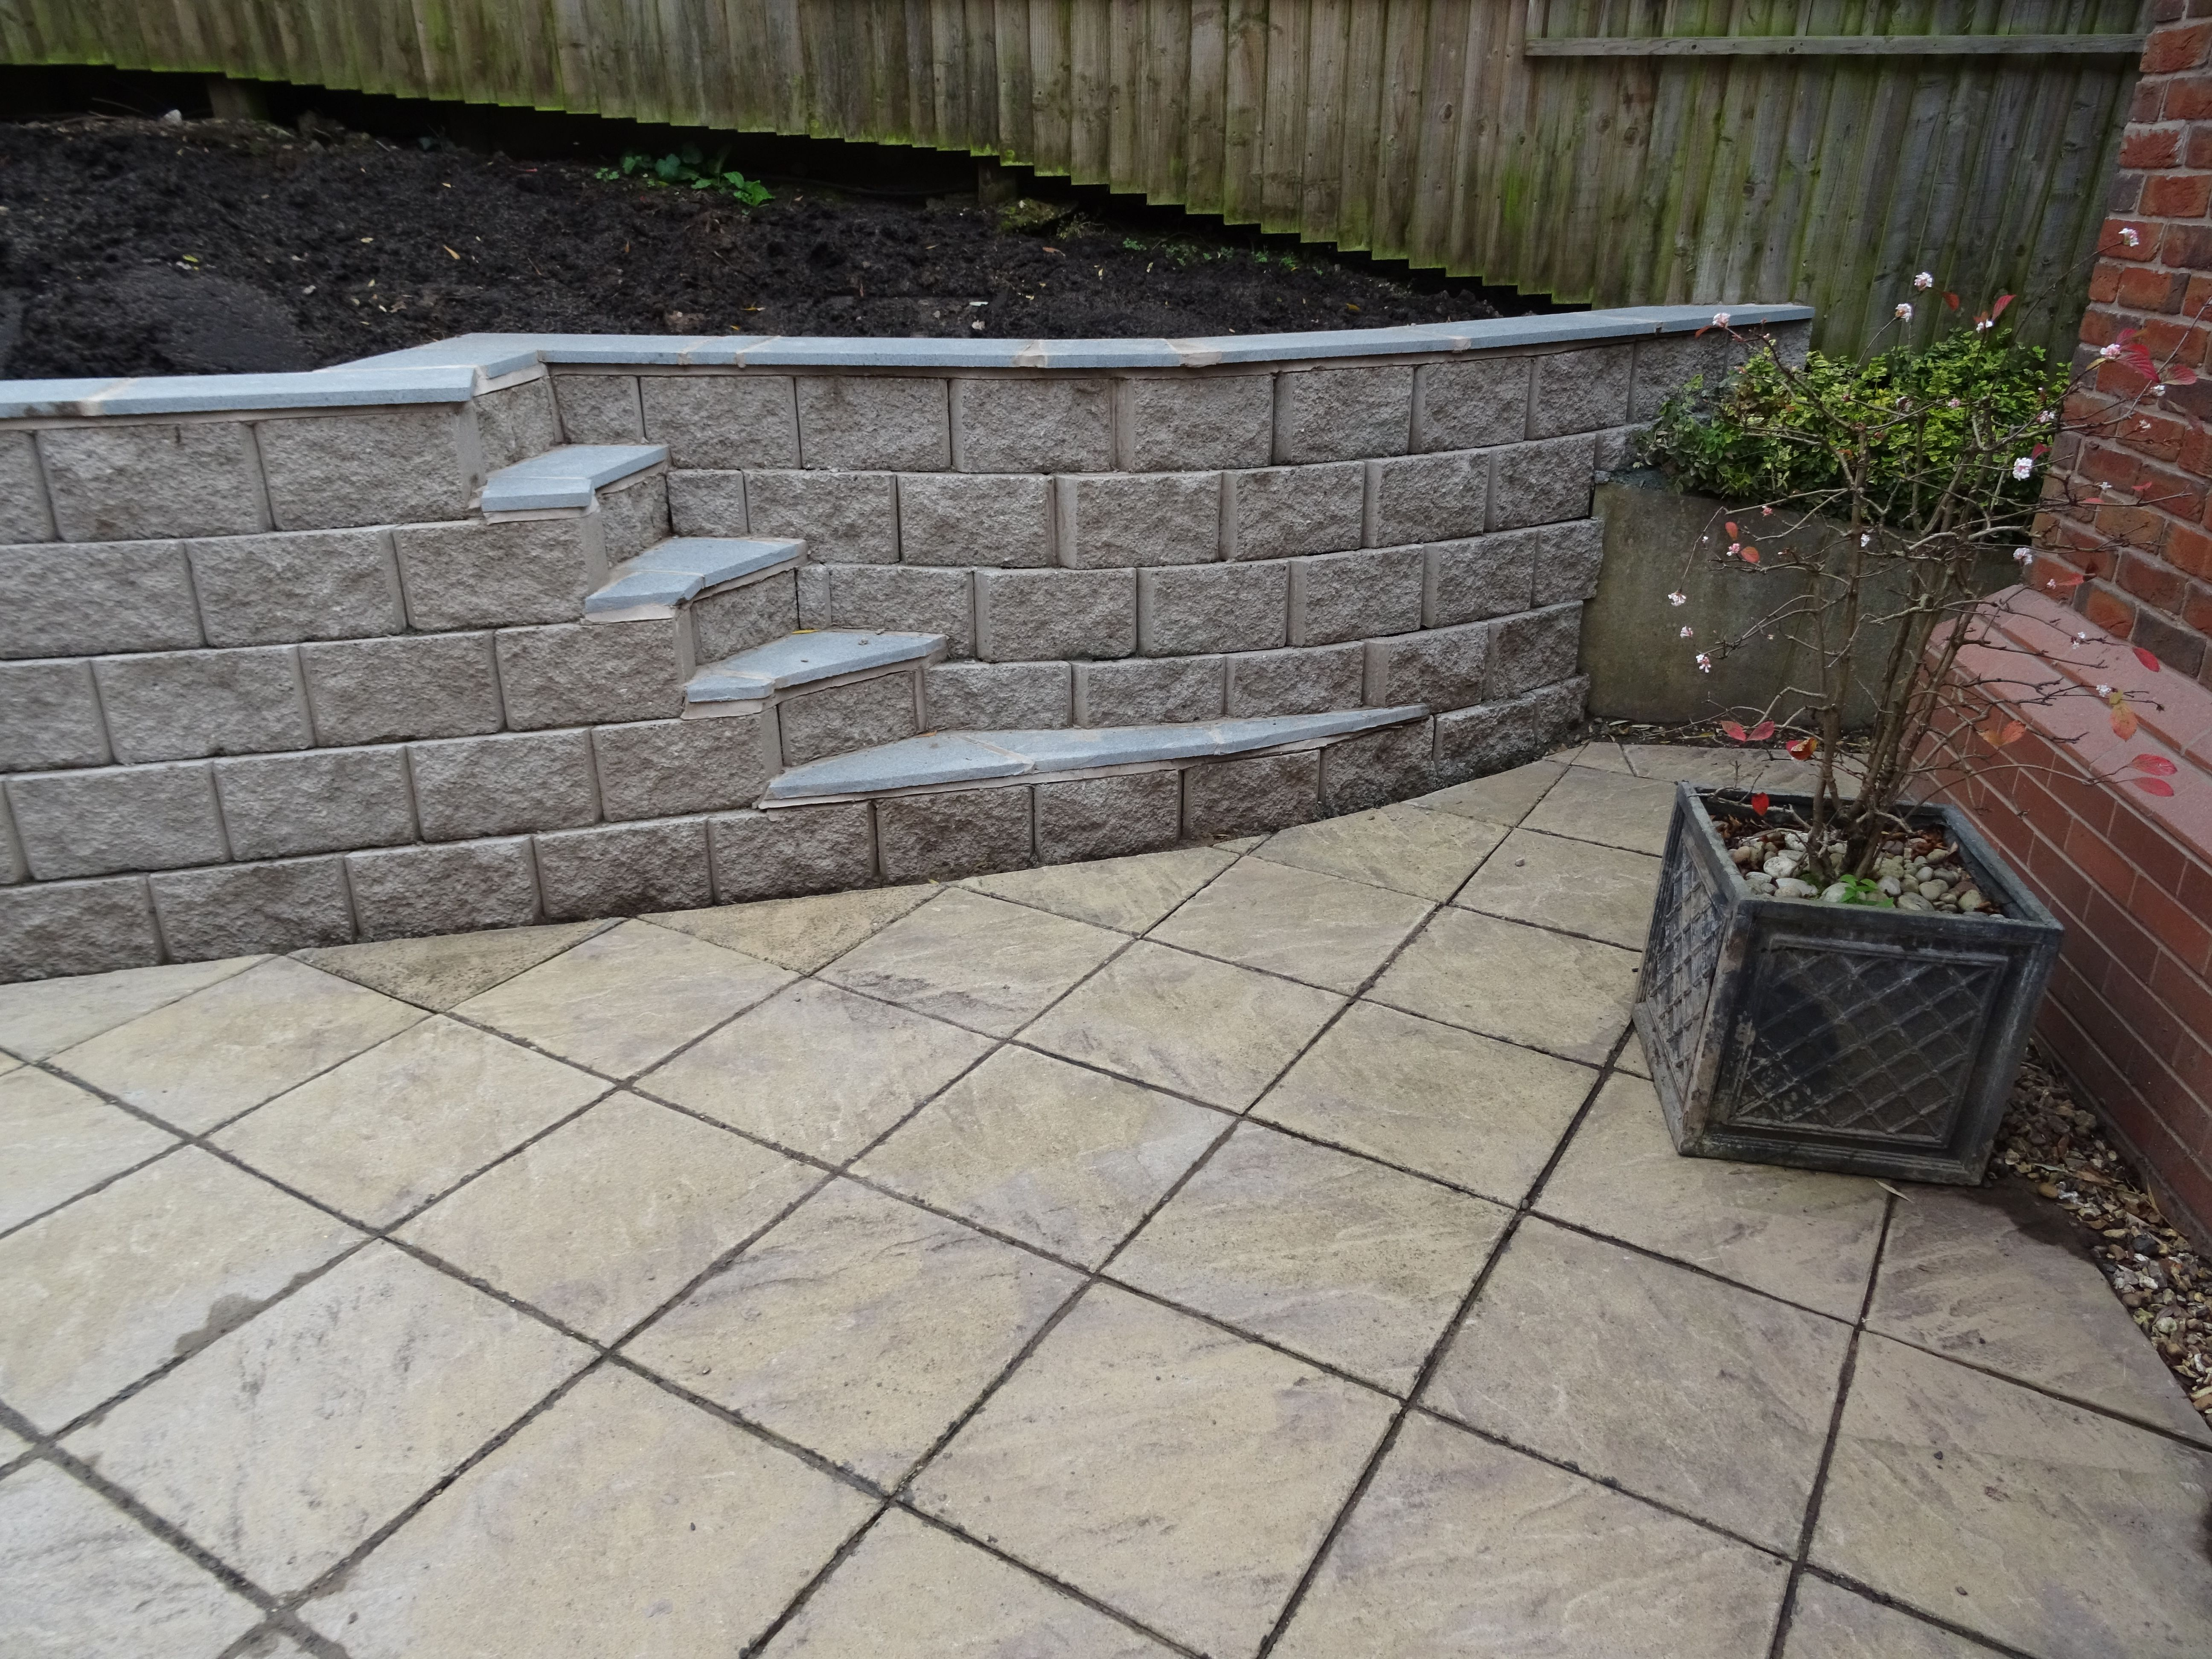 No Cement Jointing Required With The Terraforce Garden Wall Garden Wall Retaining Wall Design Bbq Area Garden